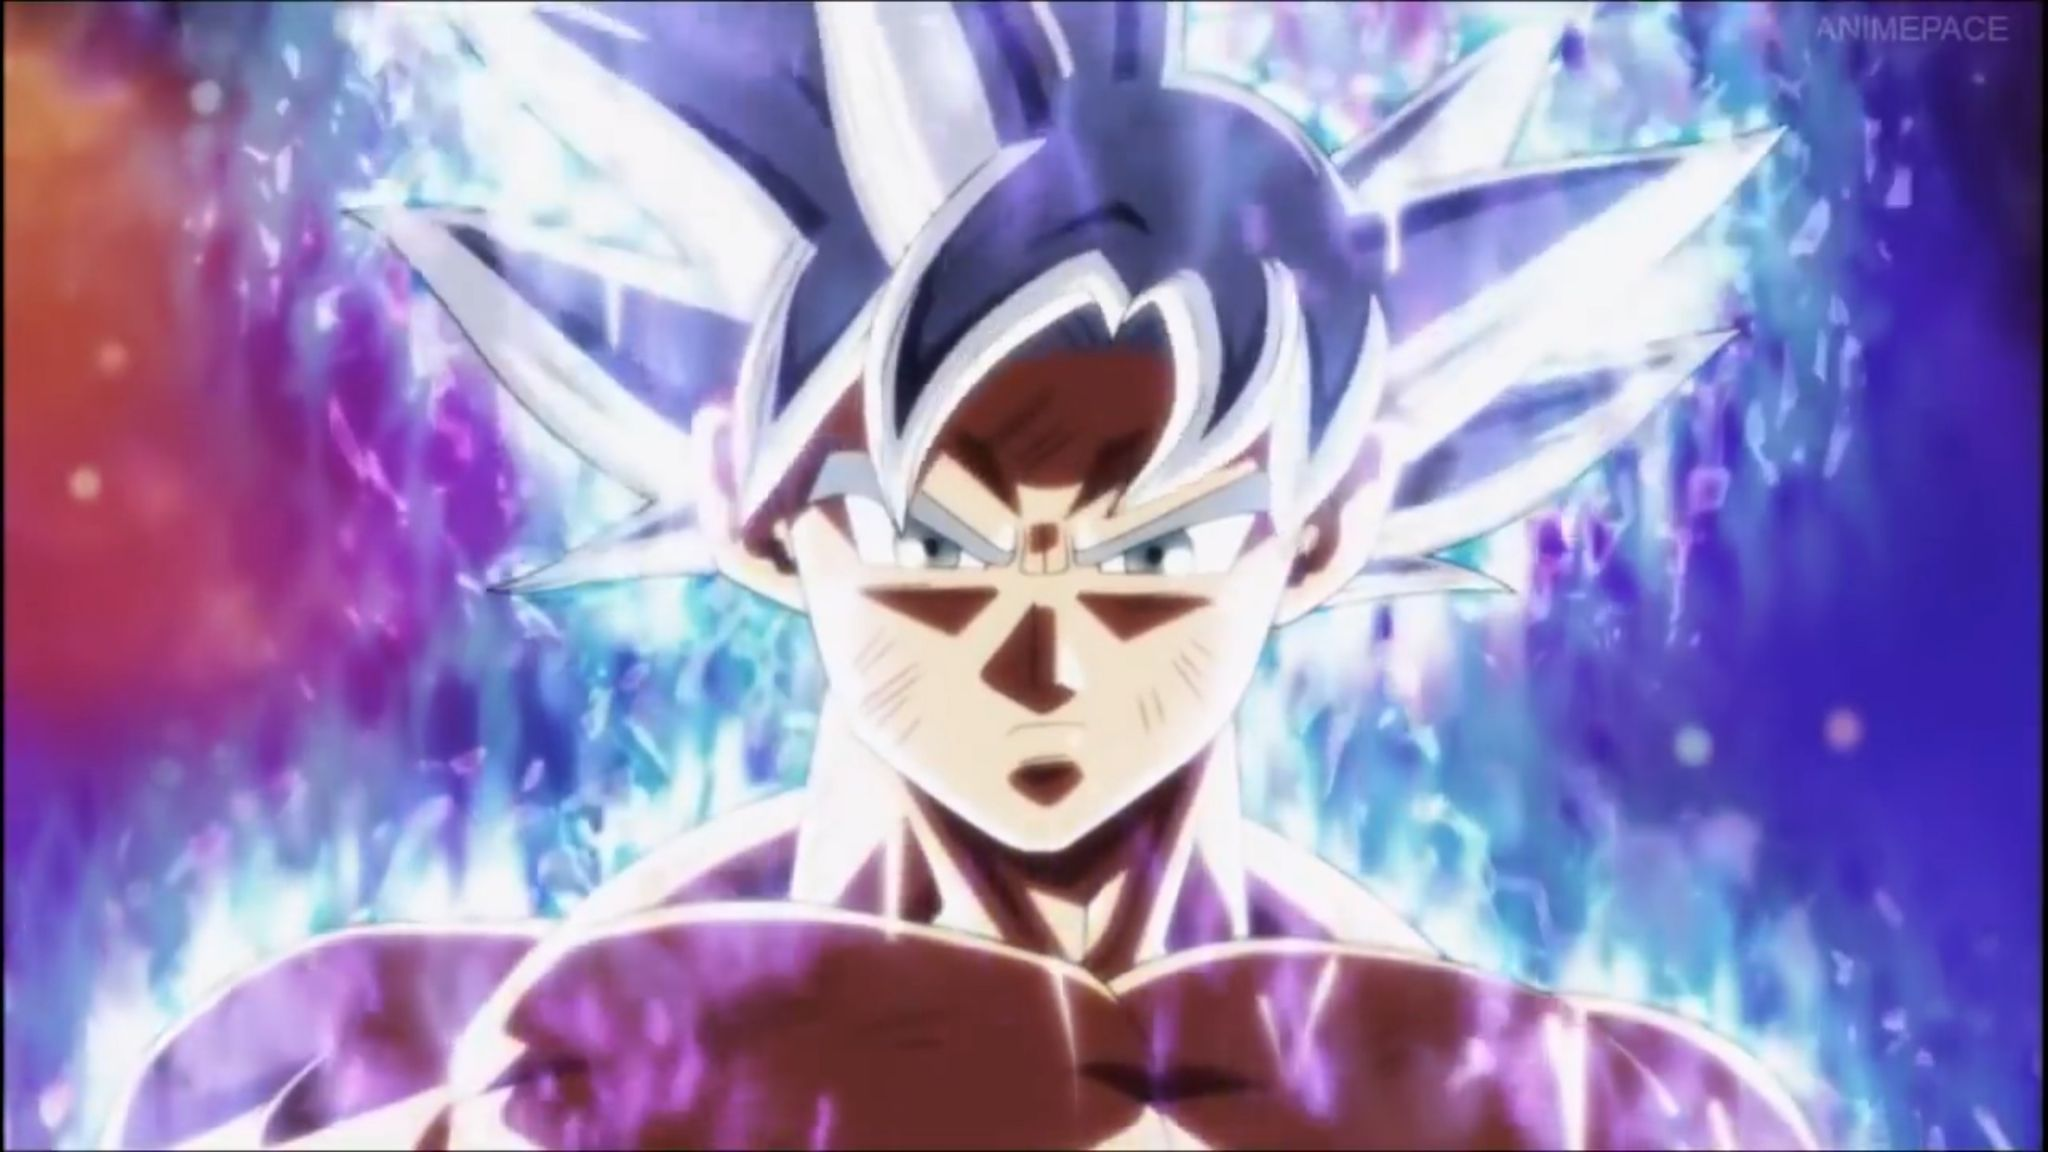 Dragon Ball Z Live Wallpaper Download For Android Dragon Ball Super Ultra Instinct 1320772 Hd Wallpaper Backgrounds Download